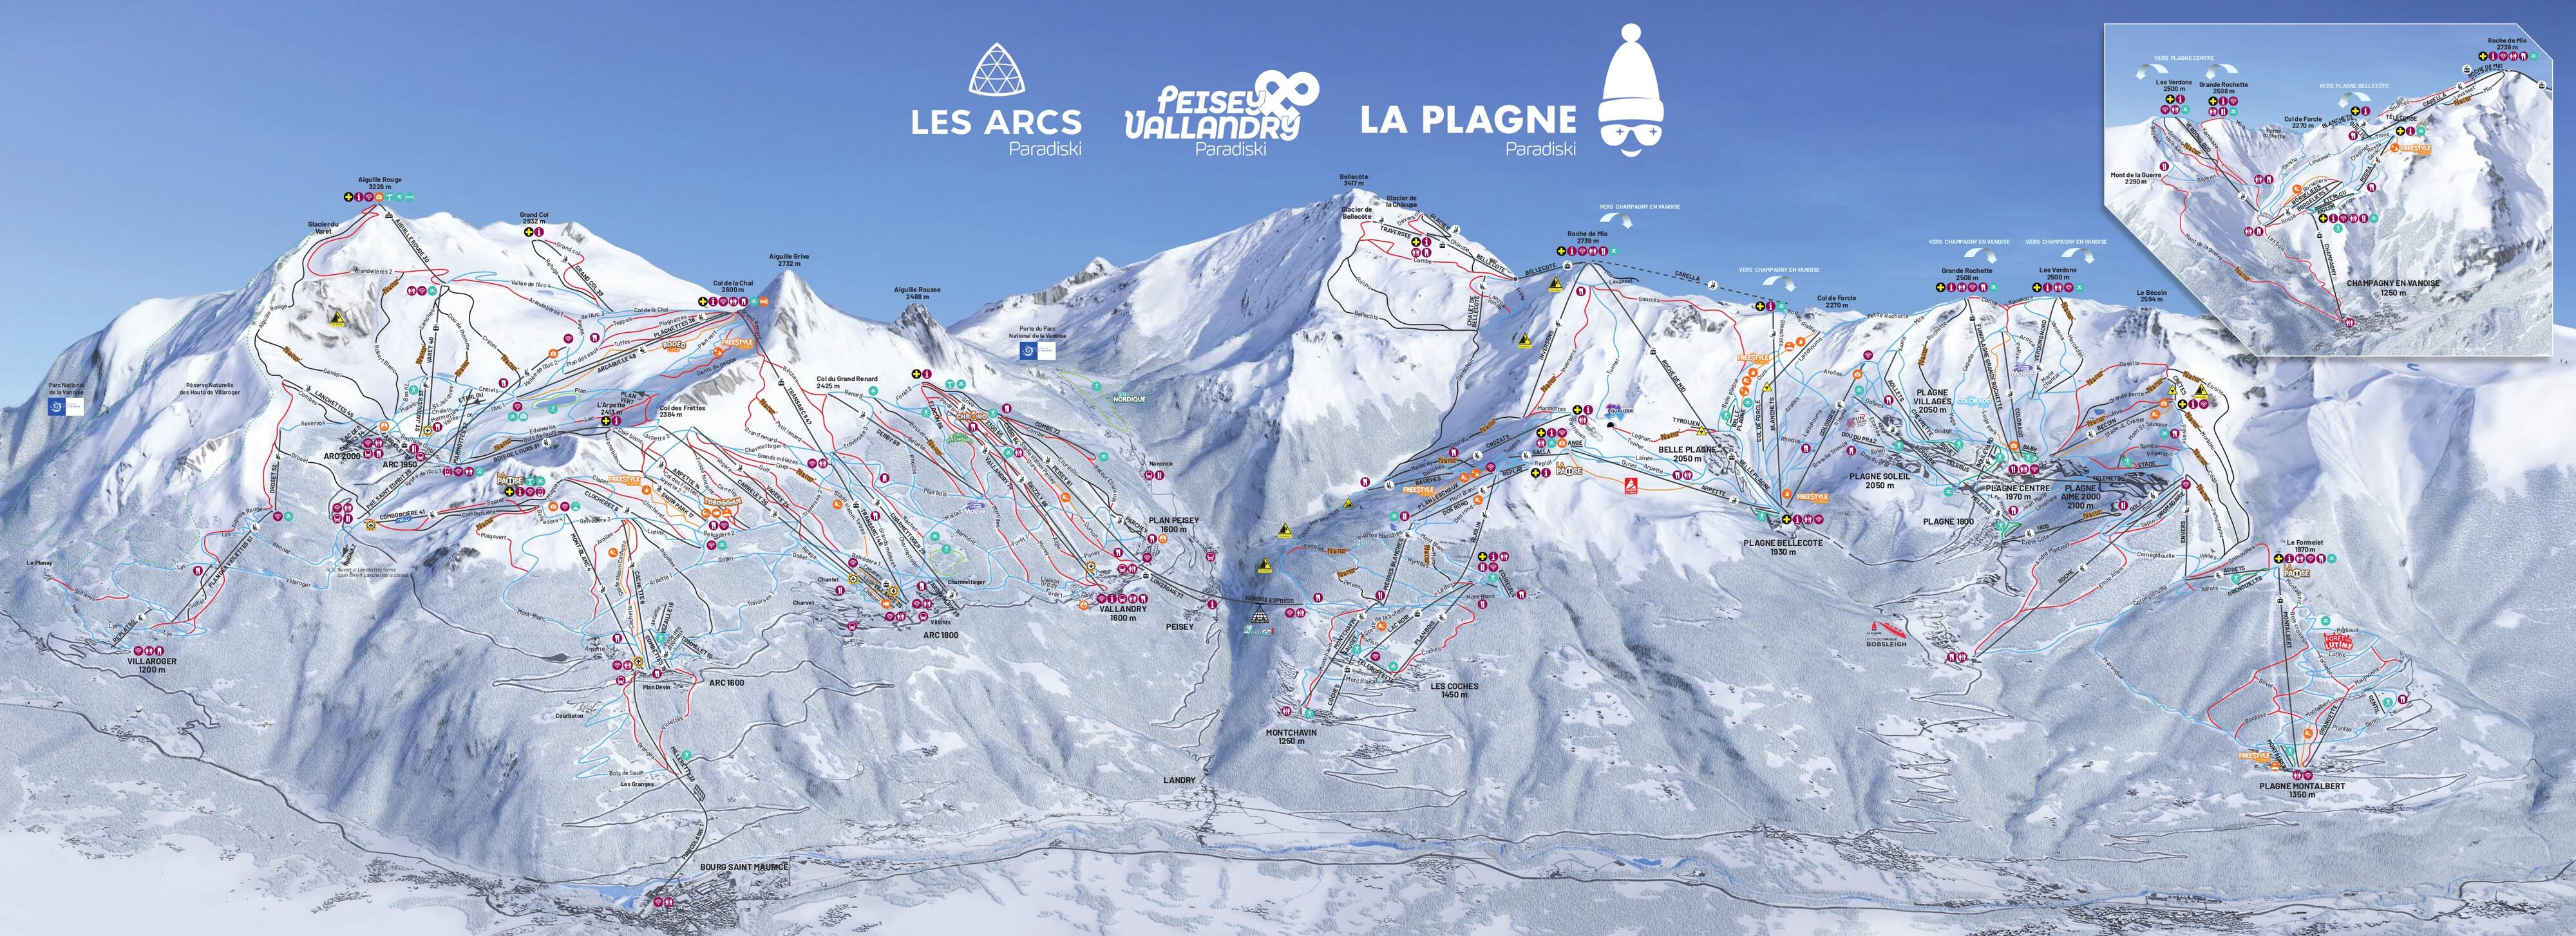 Les Arcs Piste Map Trail Map